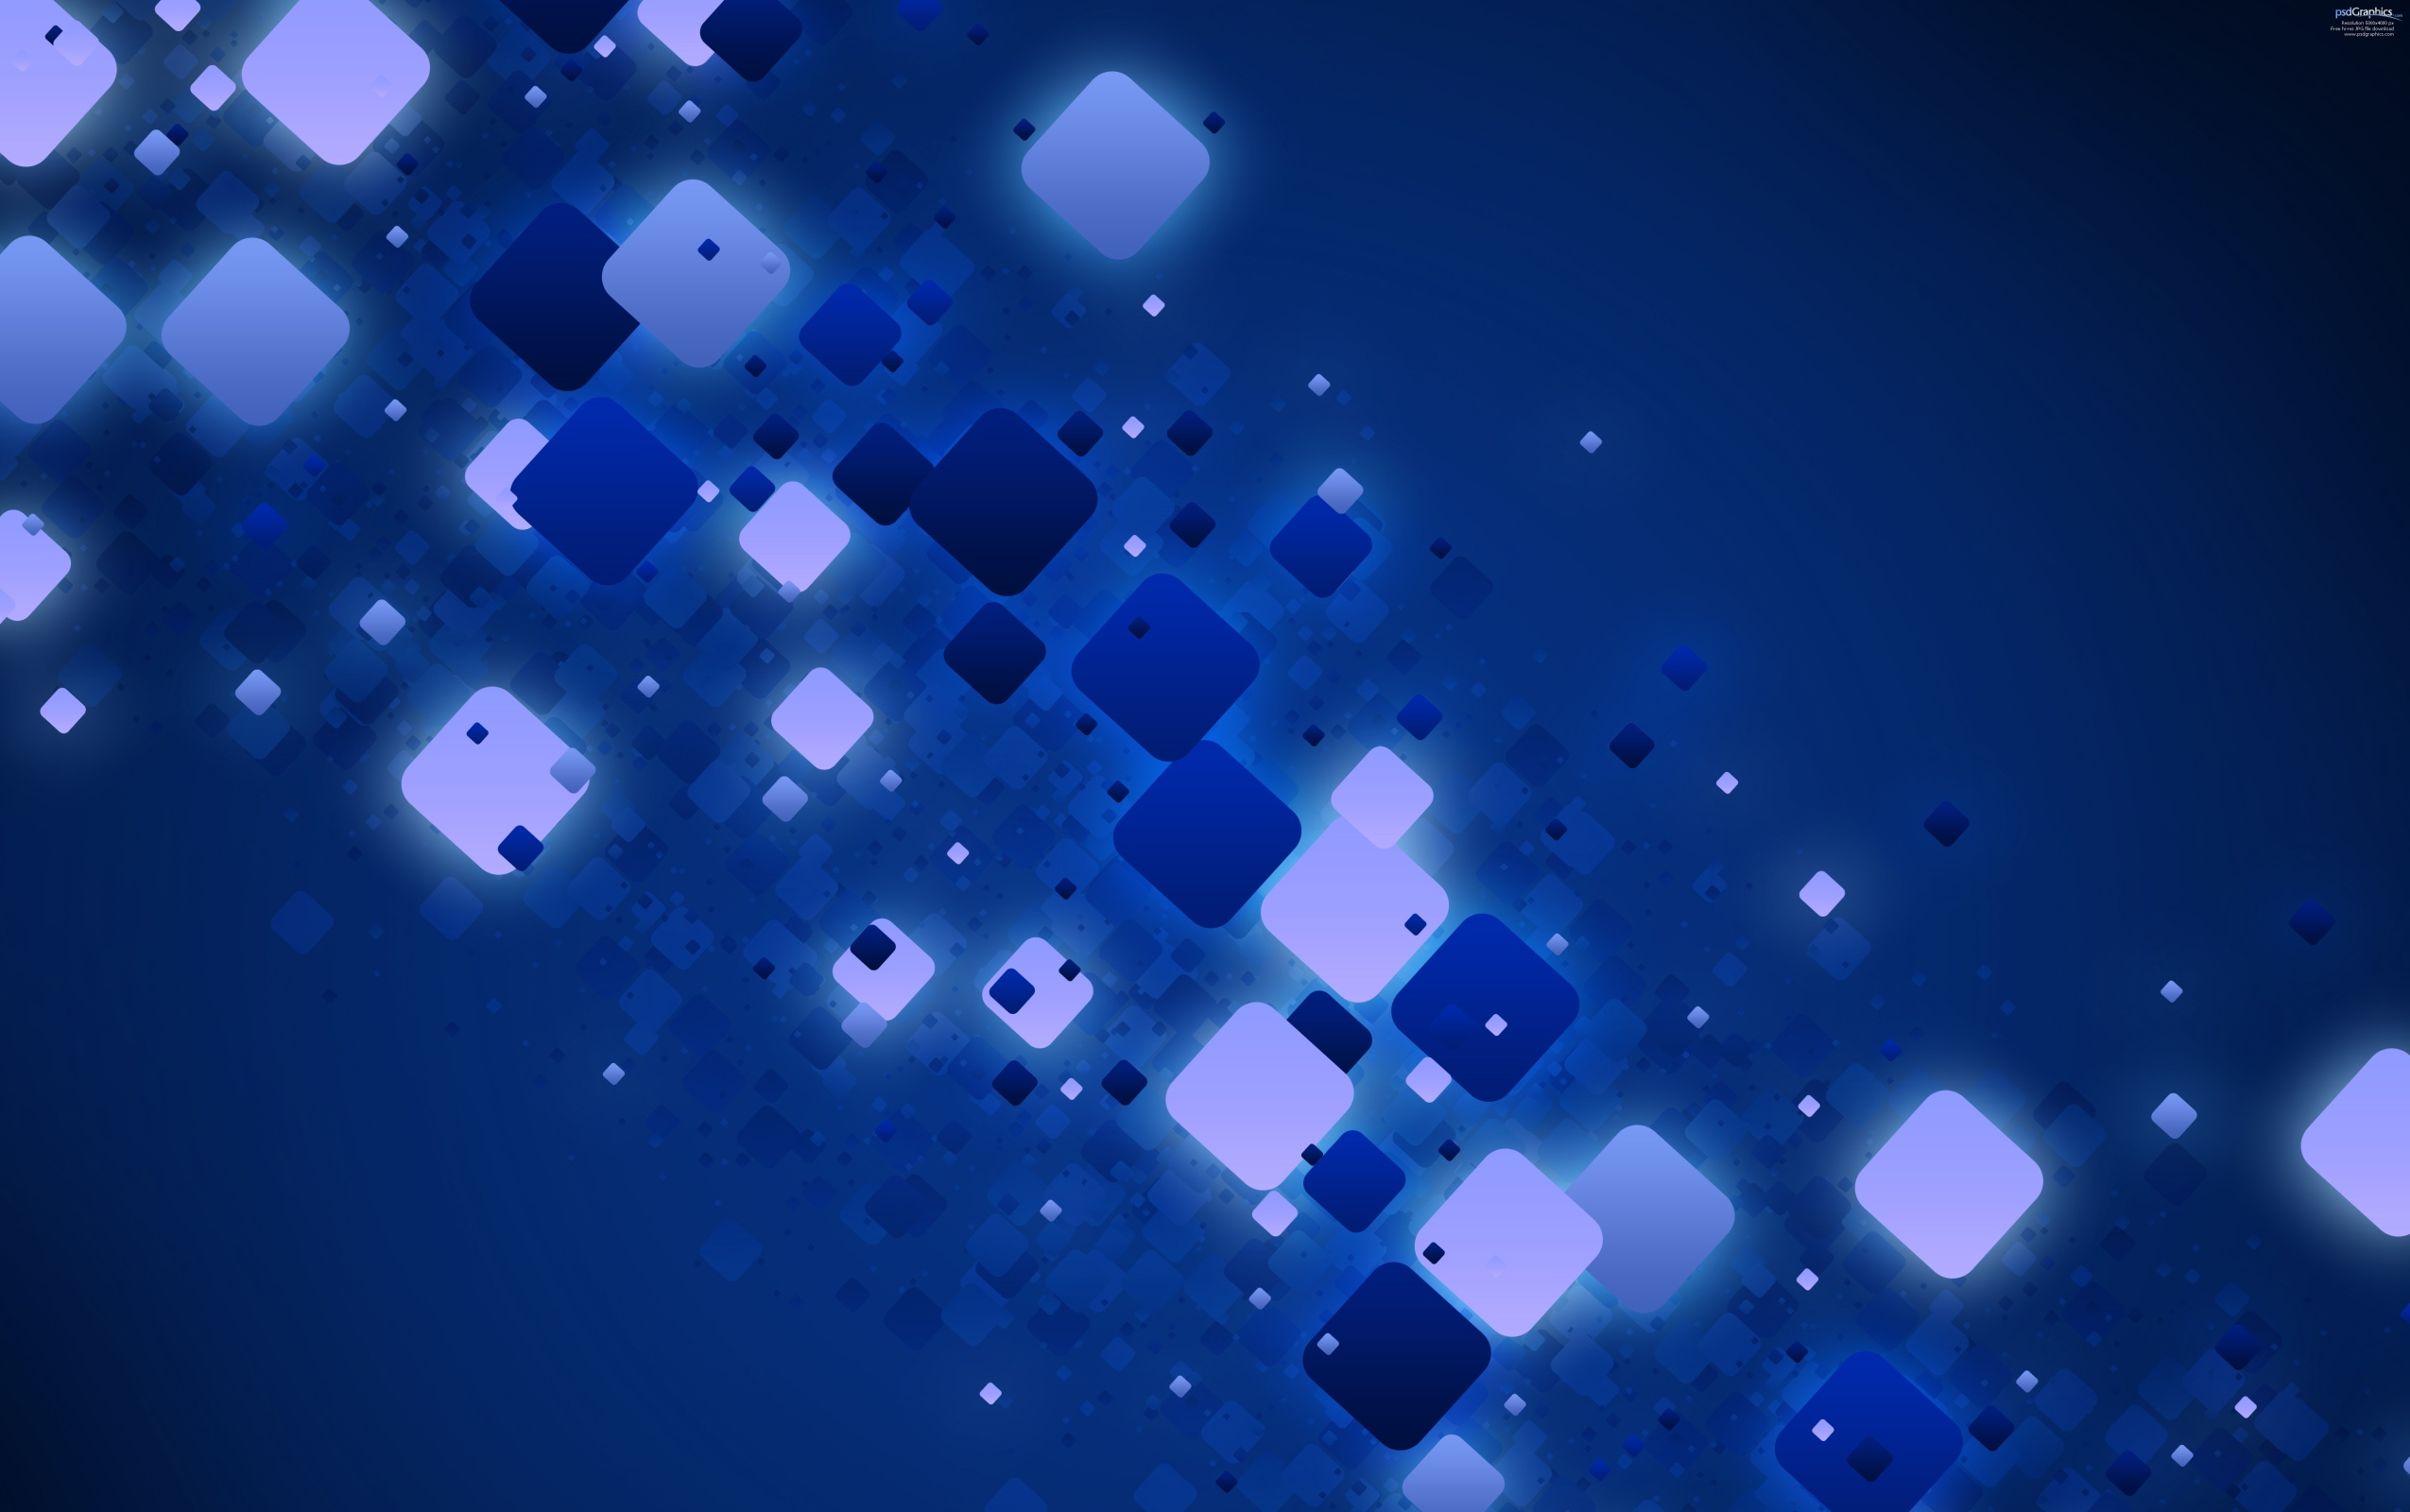 blue_abstract_light_3d_background (1)